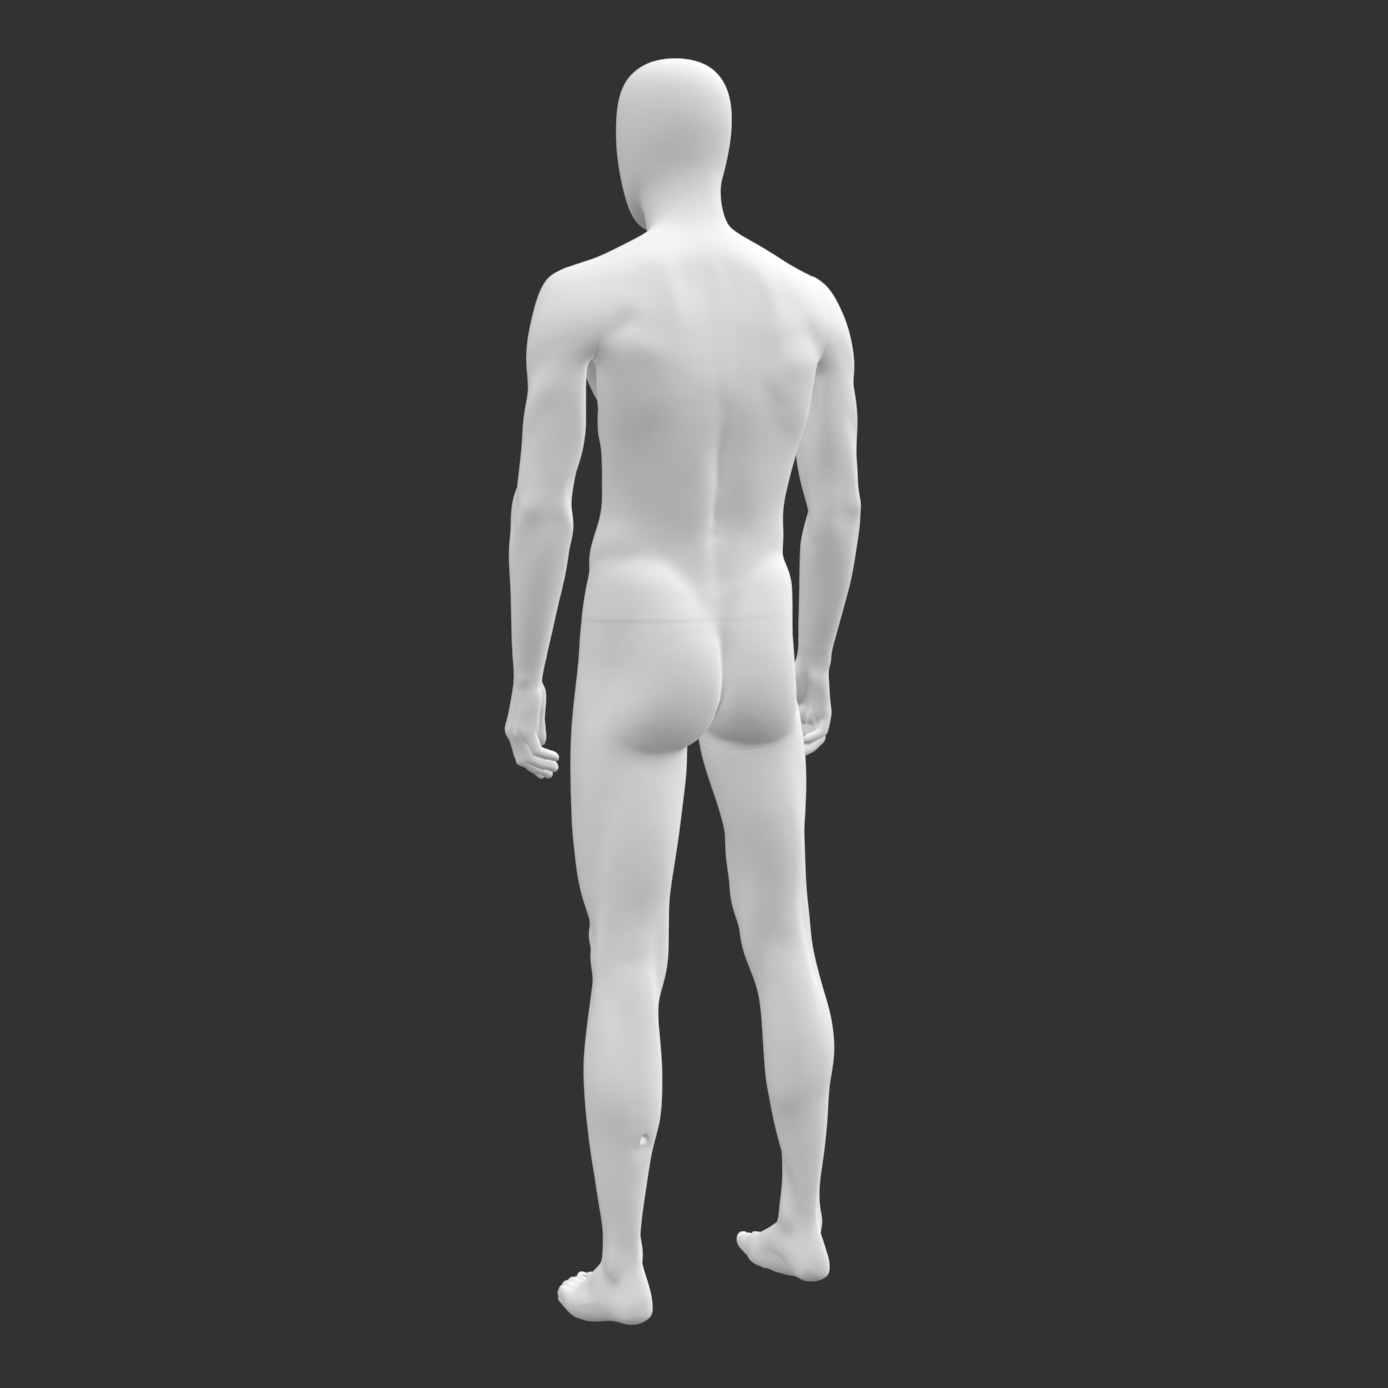 Male Sports Mannequin 3d Printing Model - 2